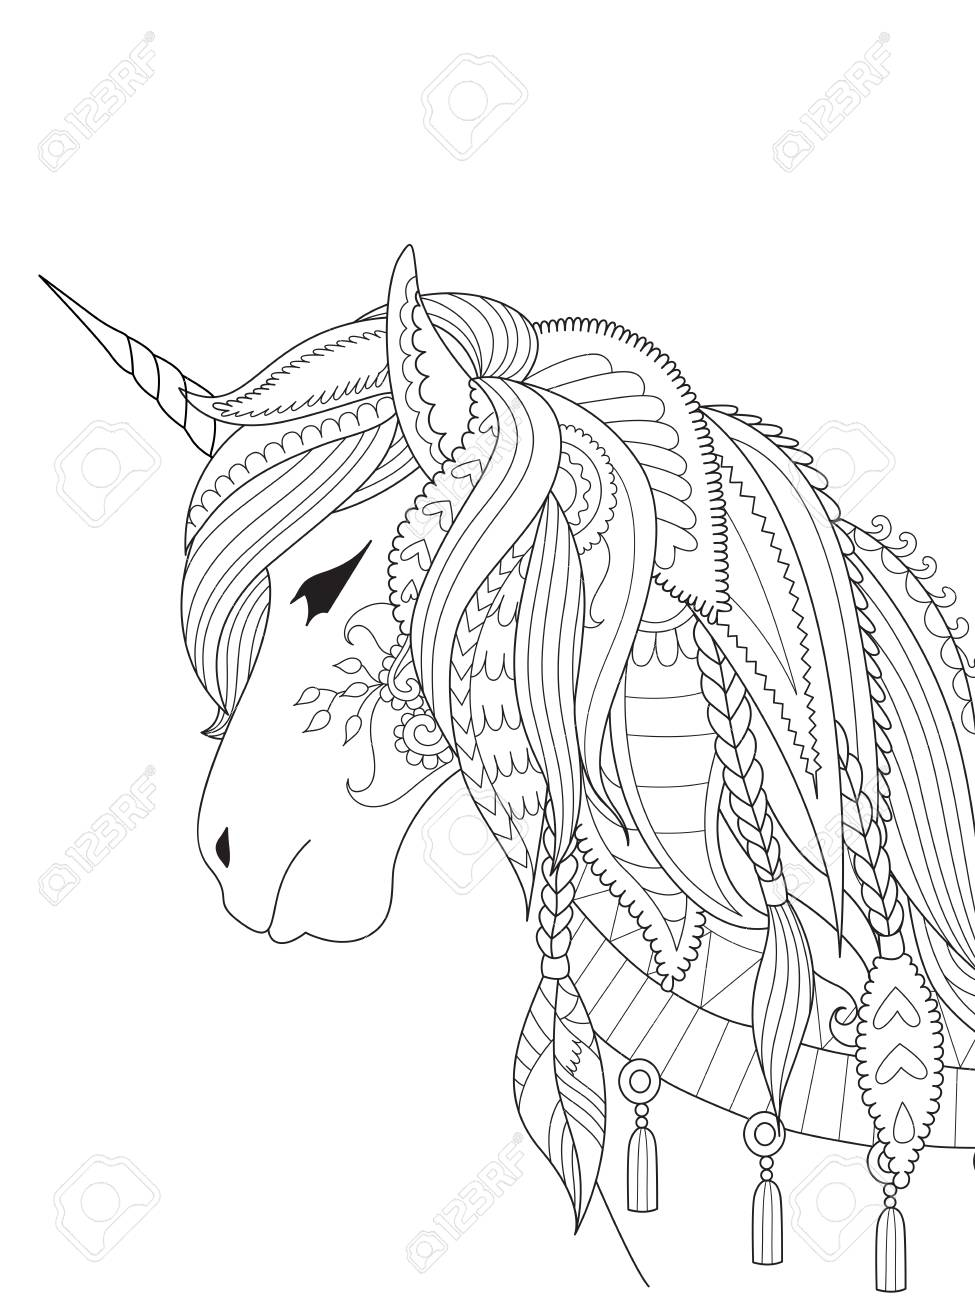 - Simple Line Art Of Unicorn For Design Element And Coloring Book